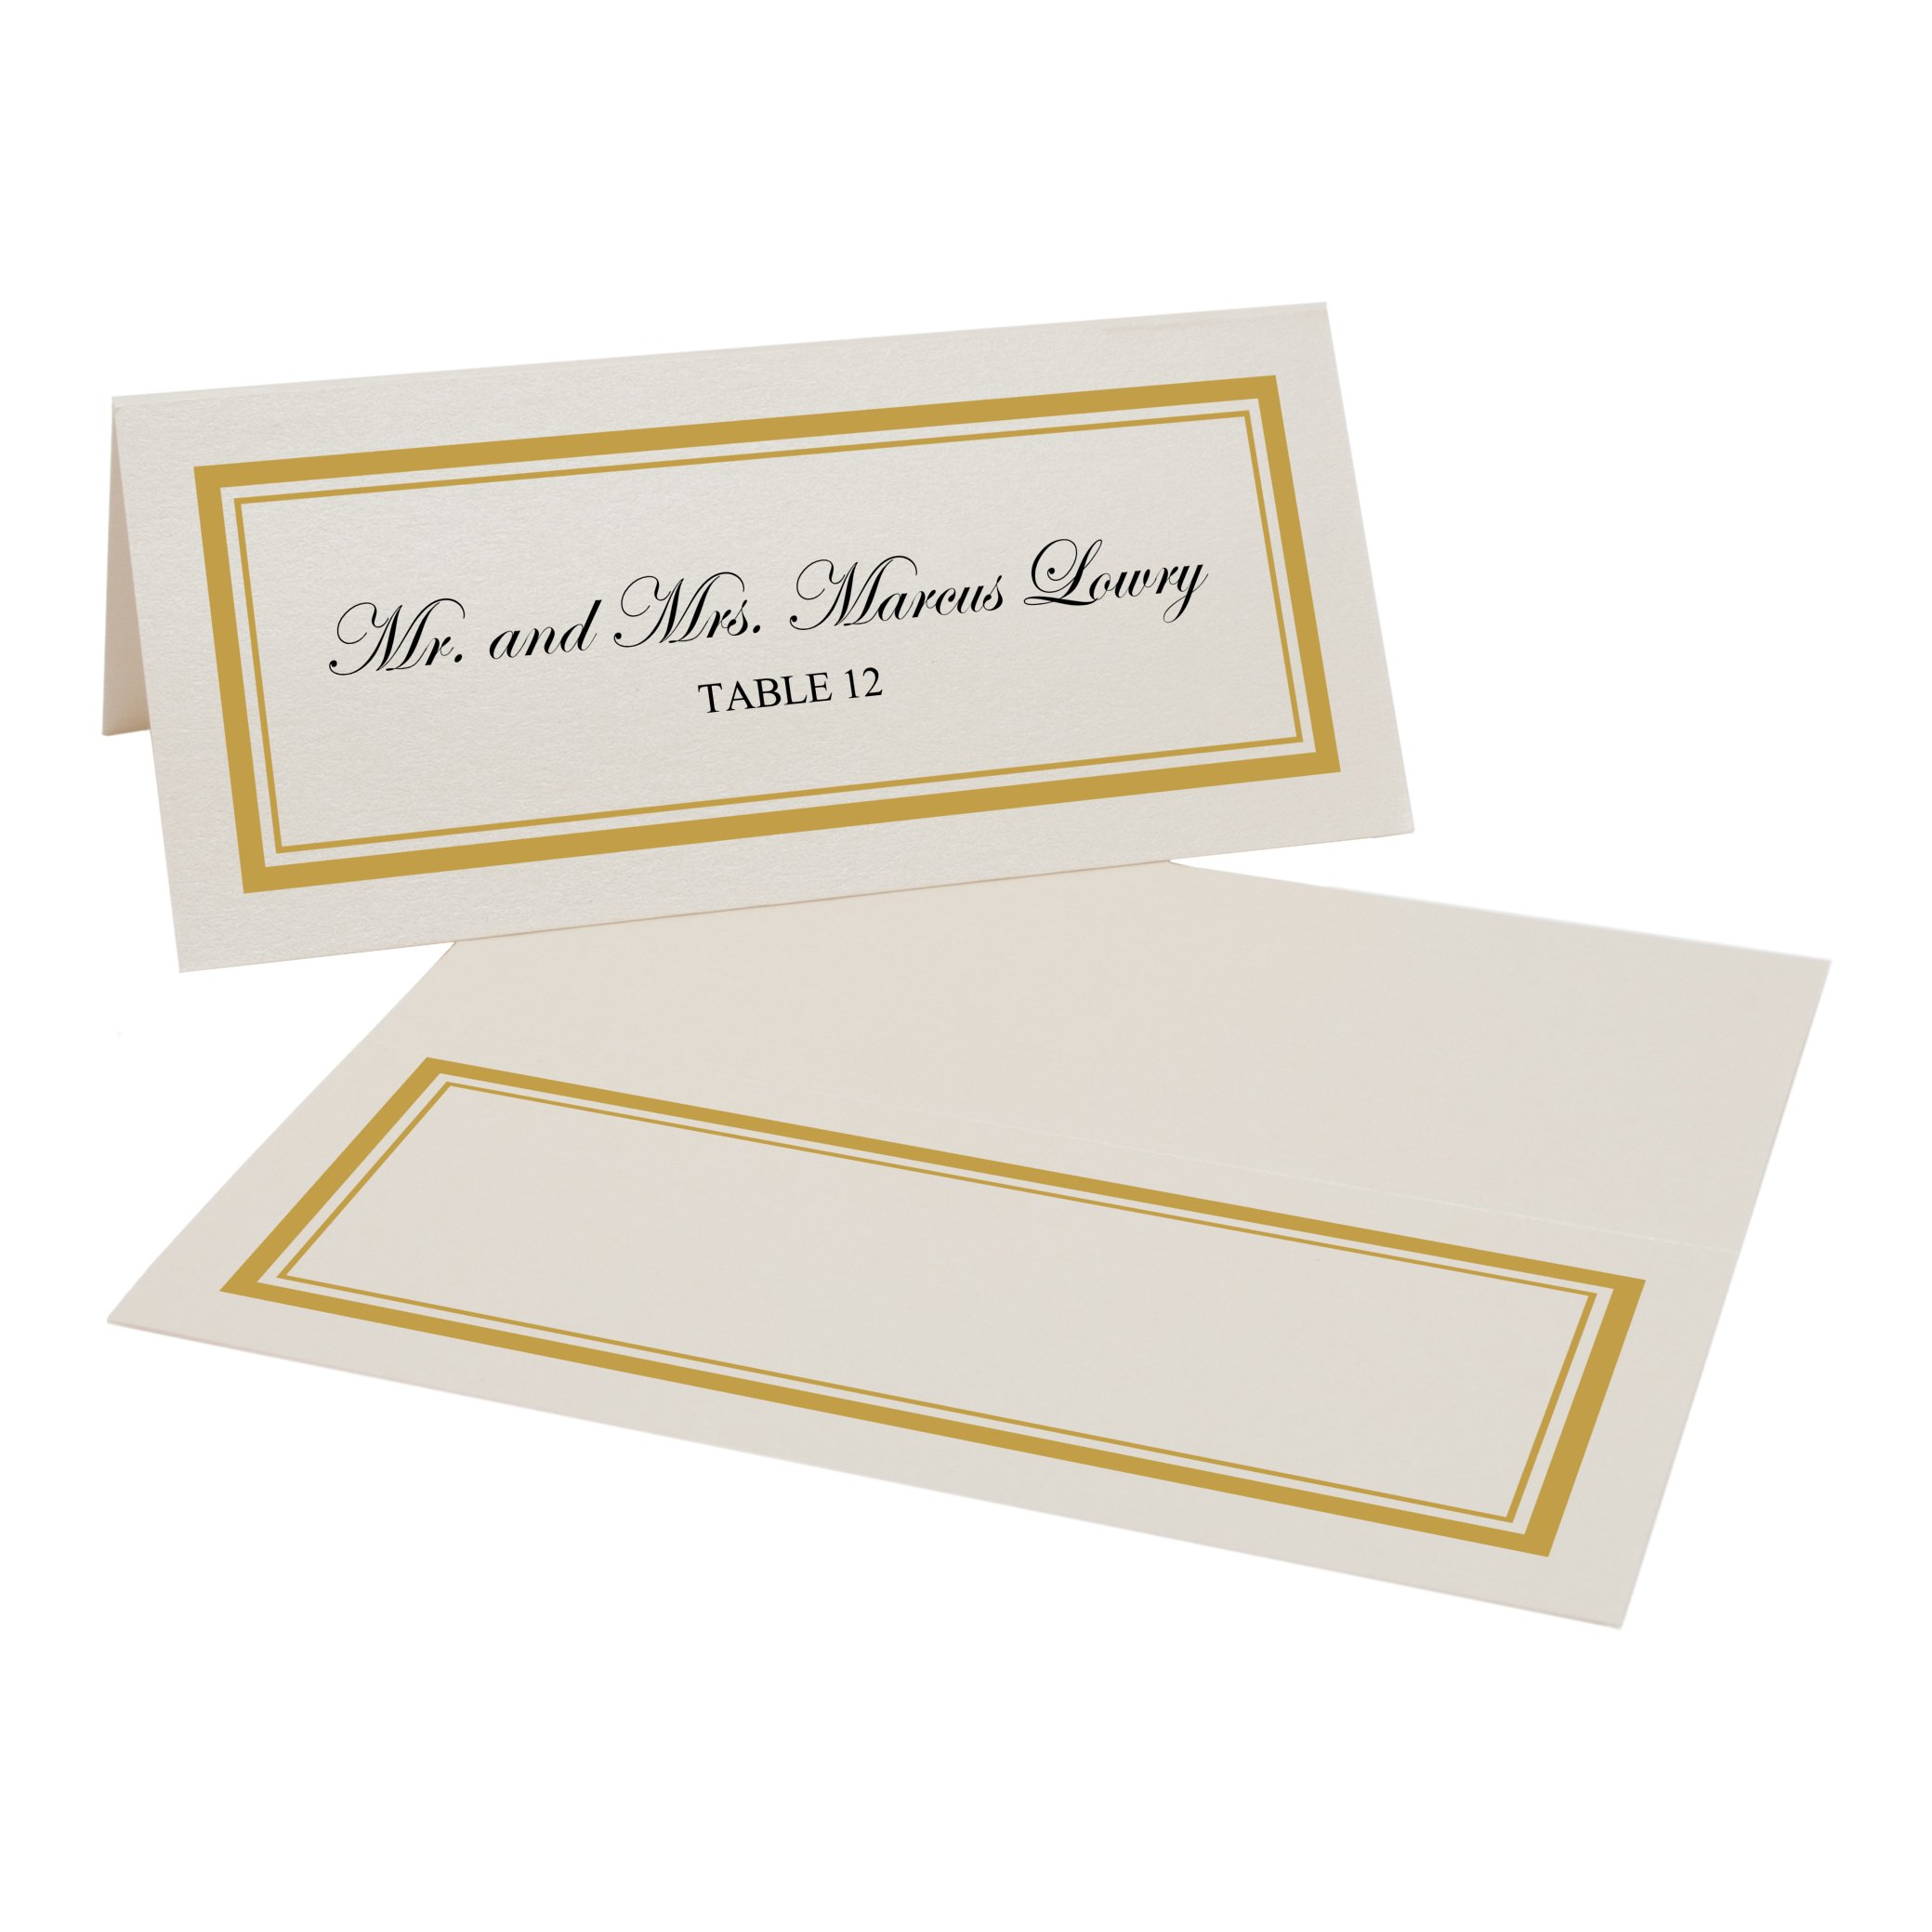 Double Line Border Easy Print Place Cards, Champagne, Gold, Set of 300 (75 Sheets) by Documents and Designs